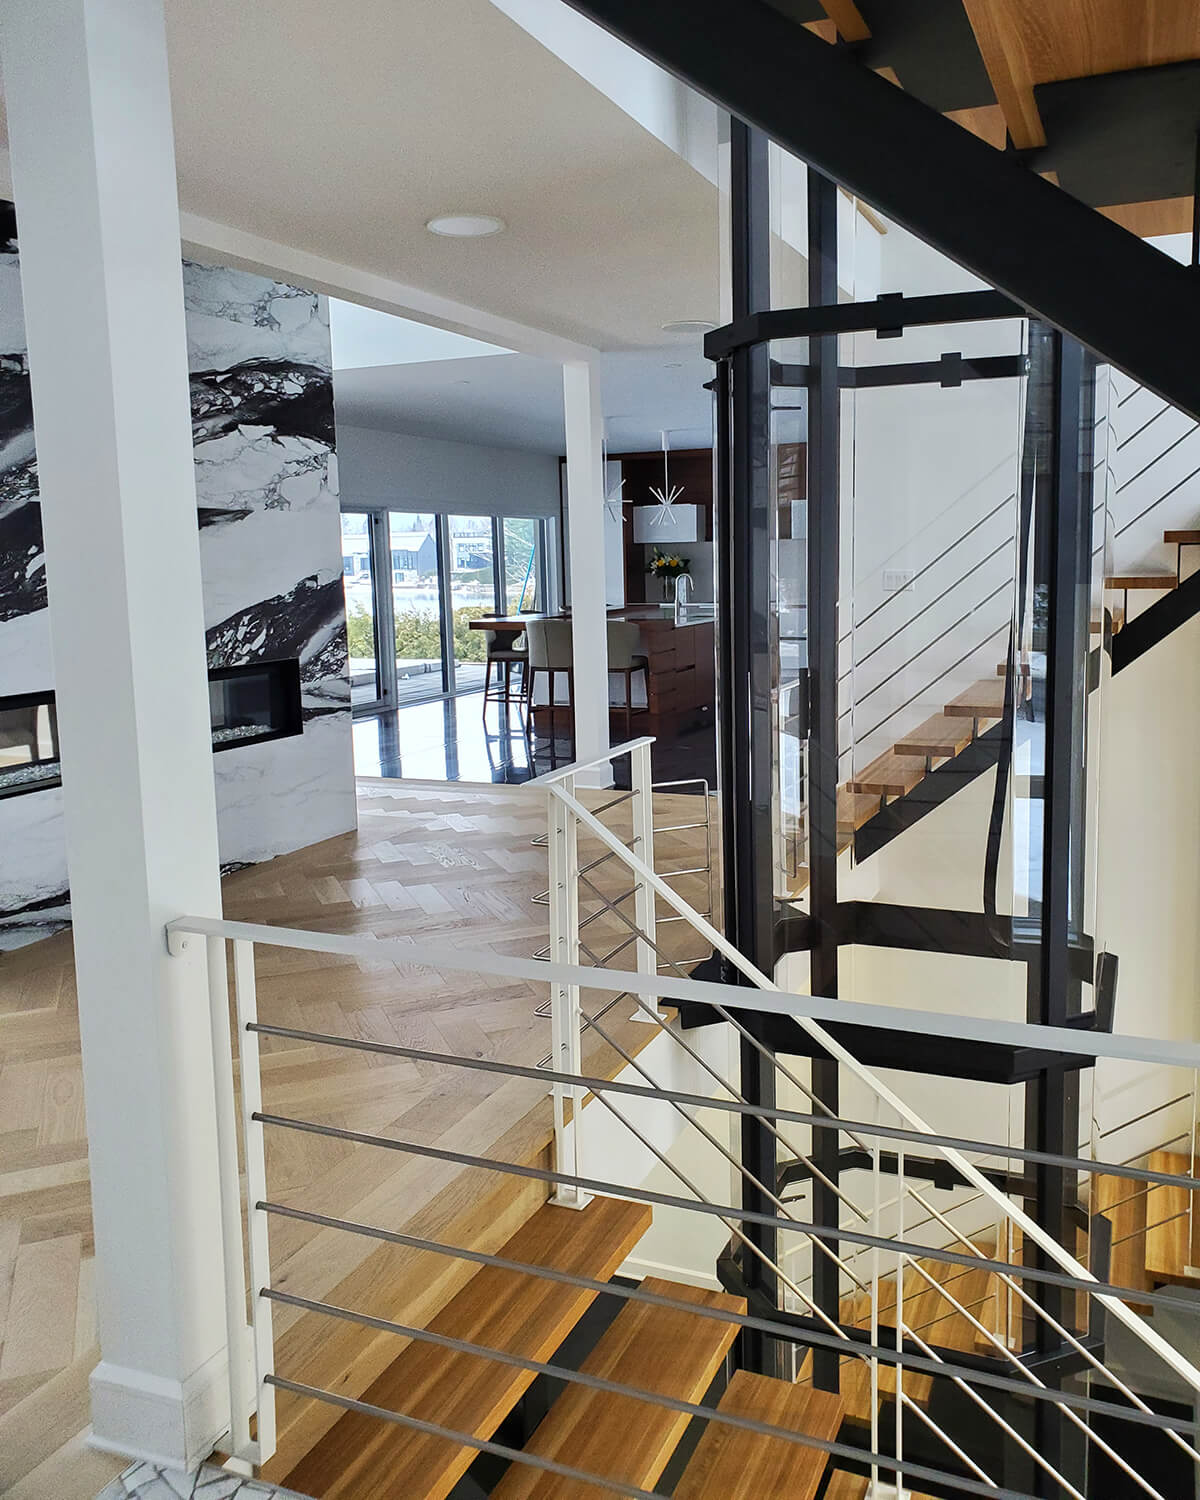 Savaria Octagonal Acrylic Panoramic Home Elevator with black frame between two wooden staircases, as seen from the back